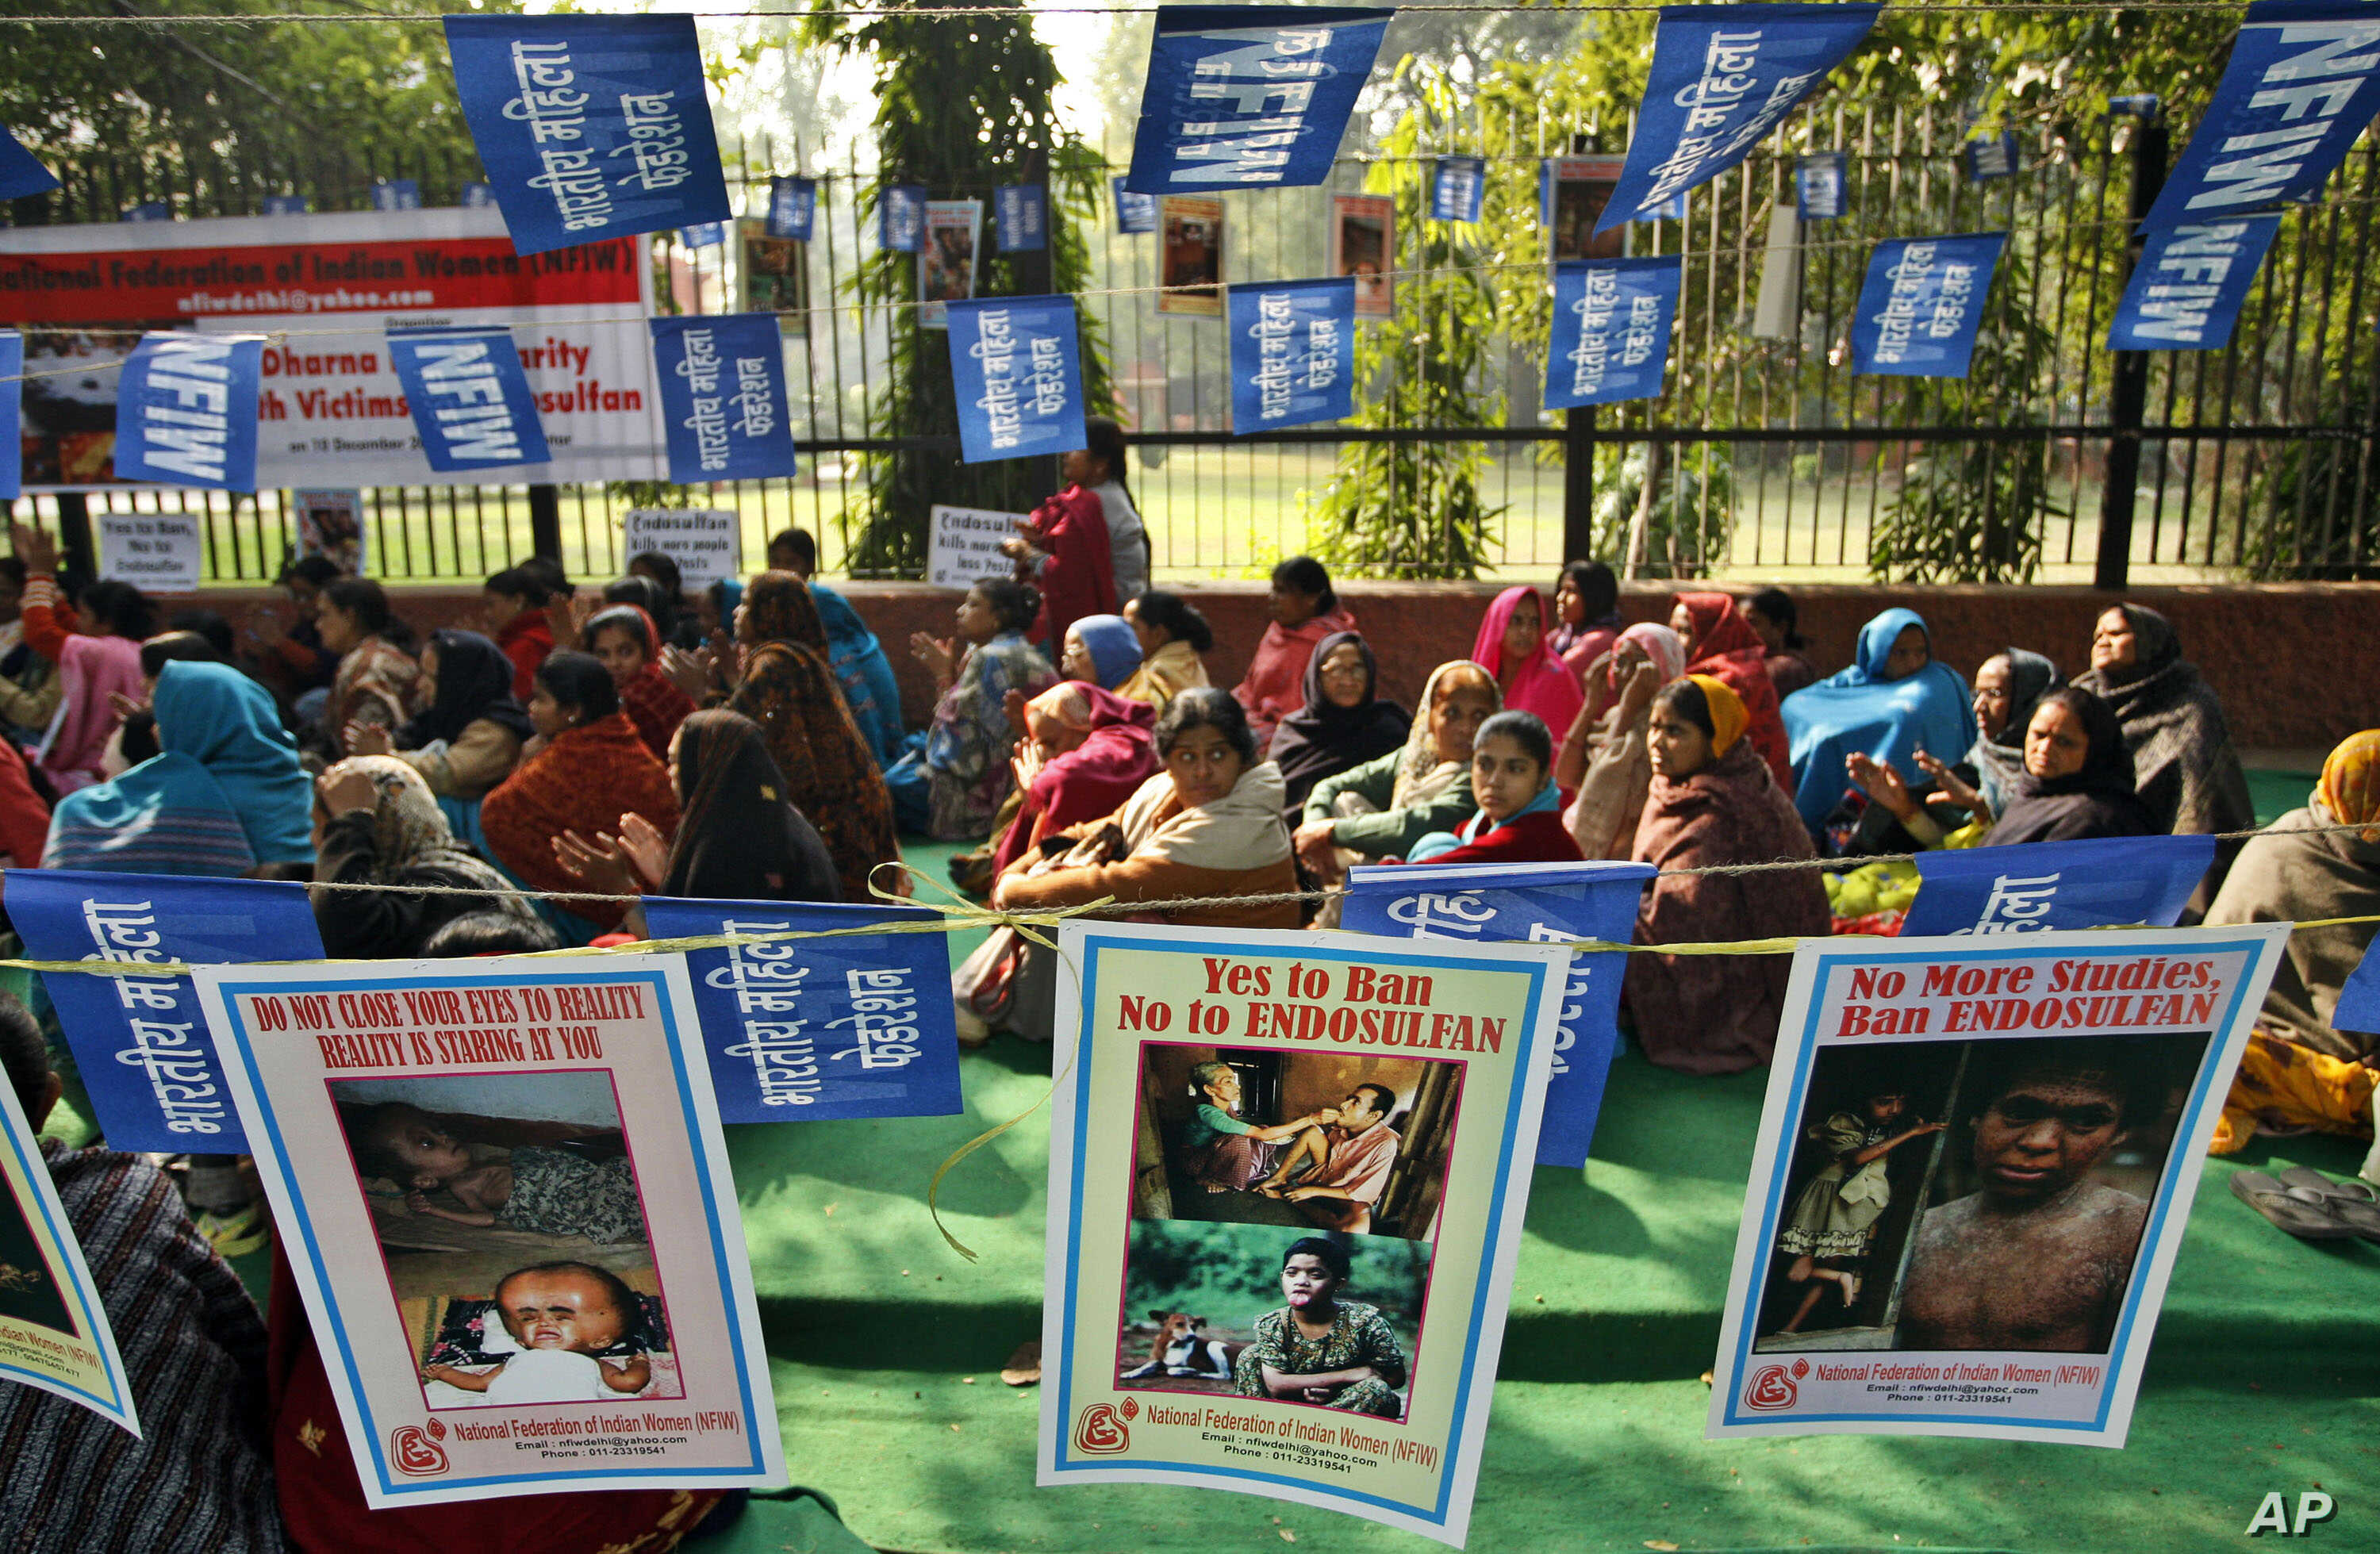 FILE - Activists of the National Federation of Indian Women sit near posters demanding the ban of endosulfan at a protest in New Delhi, India, Dec. 10, 2010.